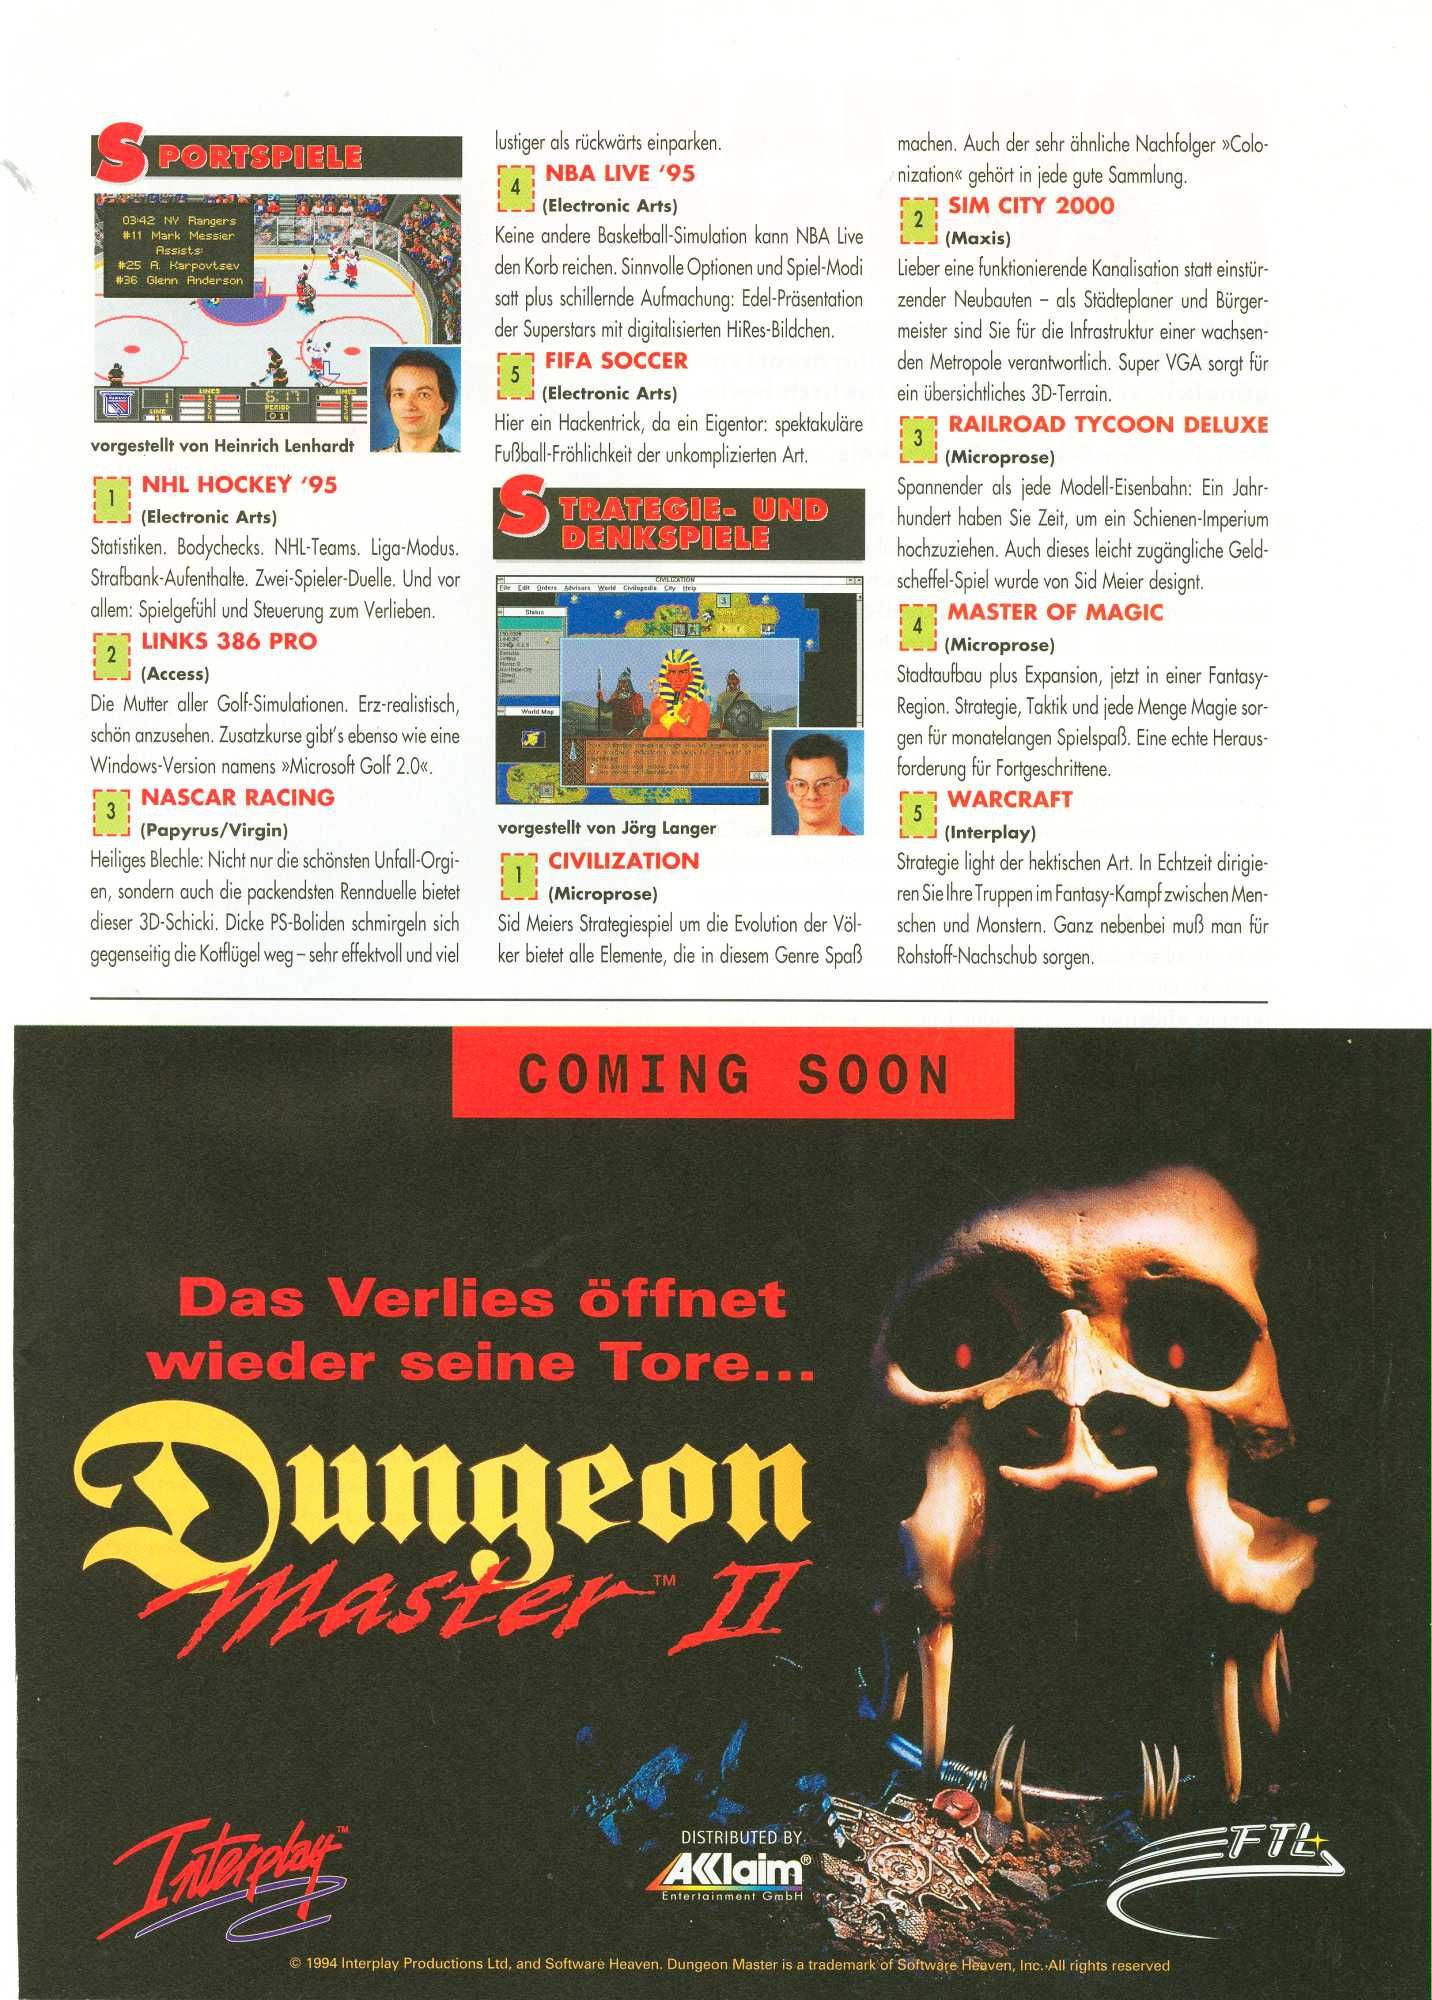 Dungeon Master II for PC Advertisement published in German magazine 'PC Player', August 1995, Page 55